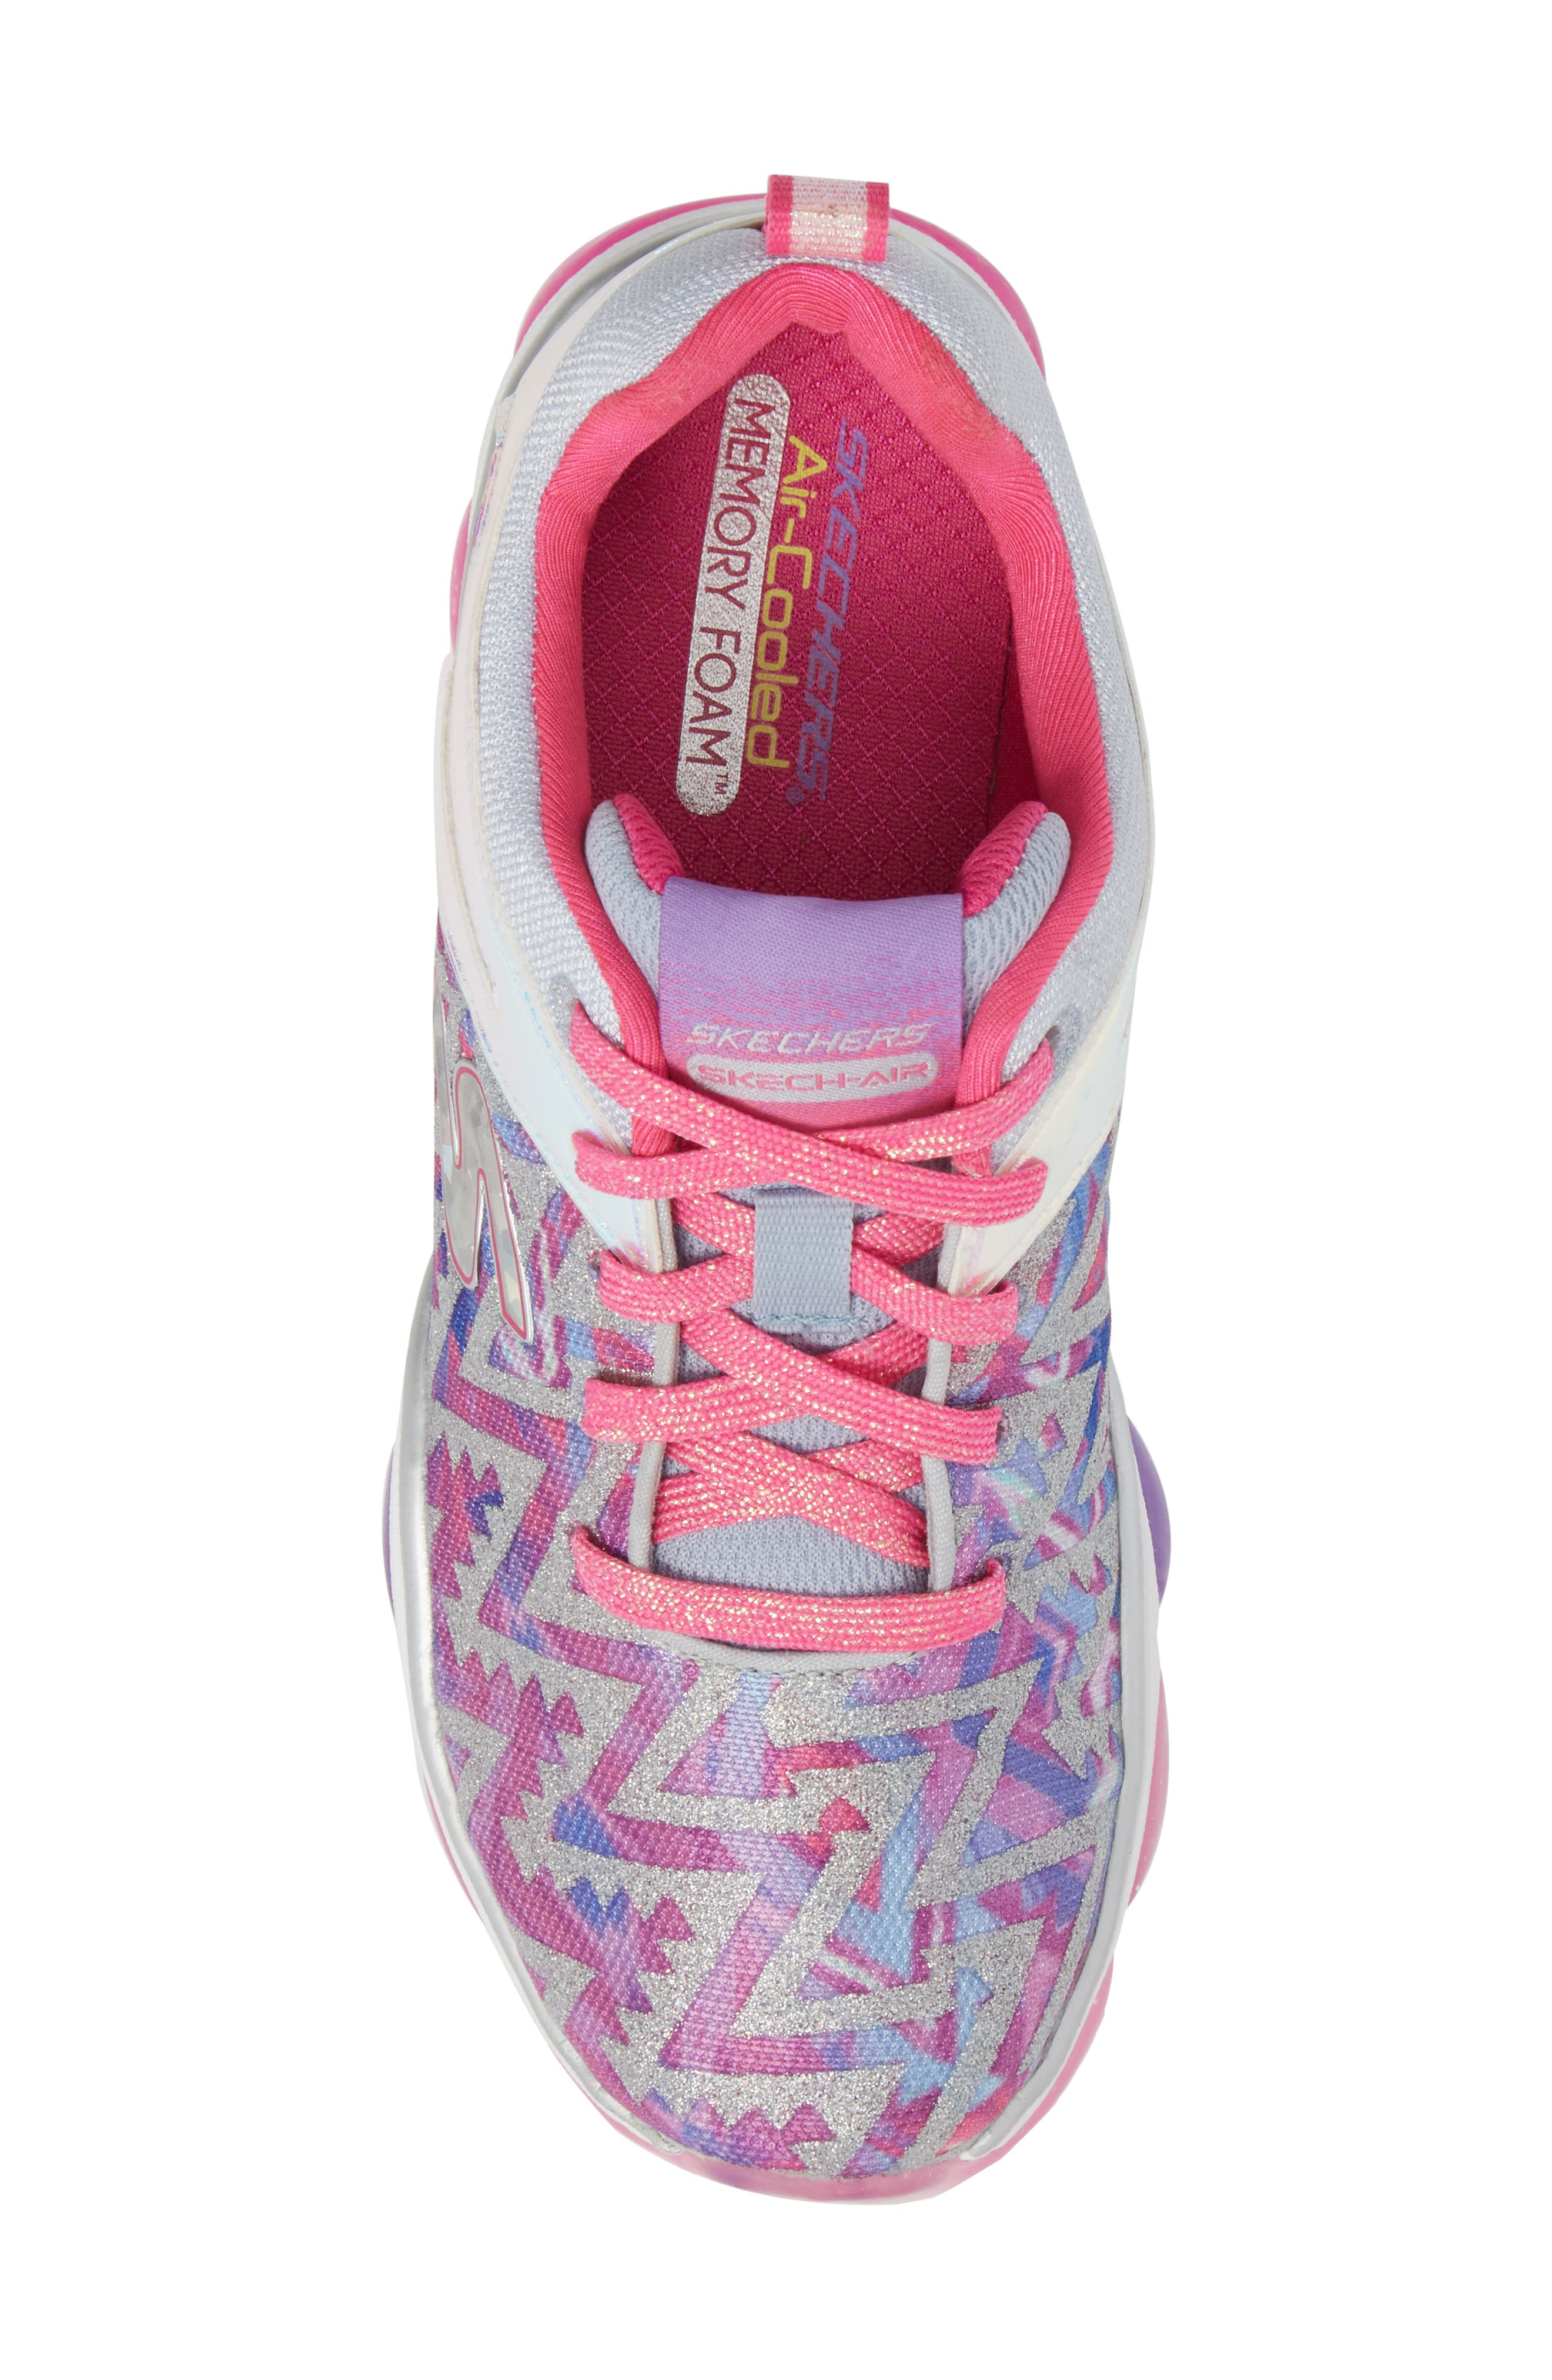 Skech Air Groove Sneaker,                             Alternate thumbnail 4, color,                             Pink/ Multi